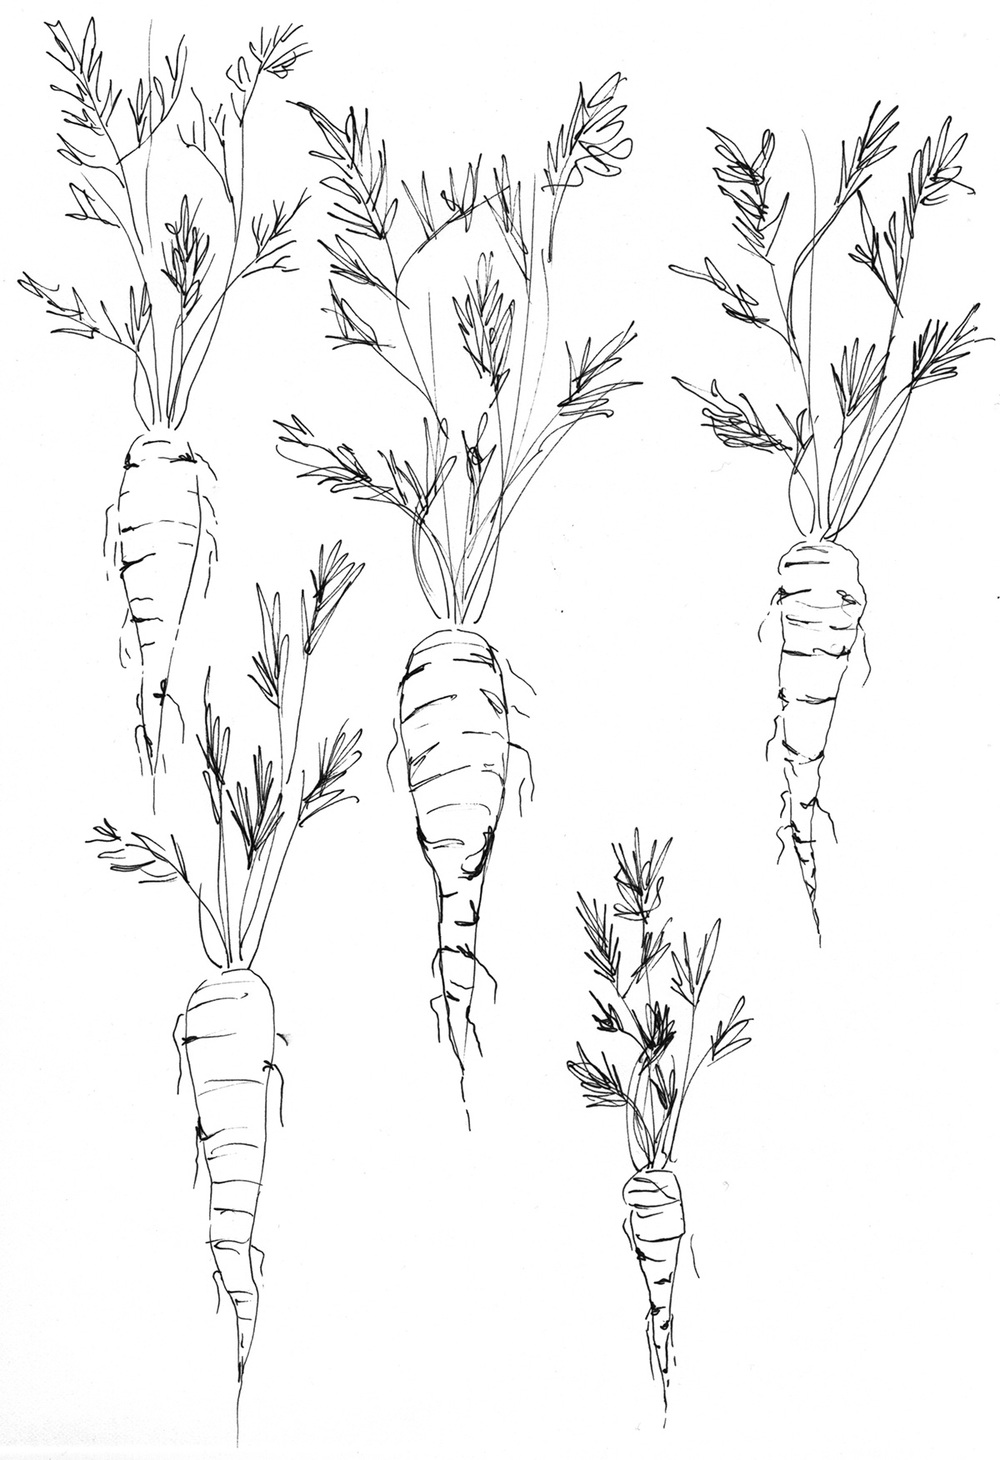 August 10: I am not exactly sure how the conversation started, but my friend and I were talking about pulling up carrots today, so I drew some.